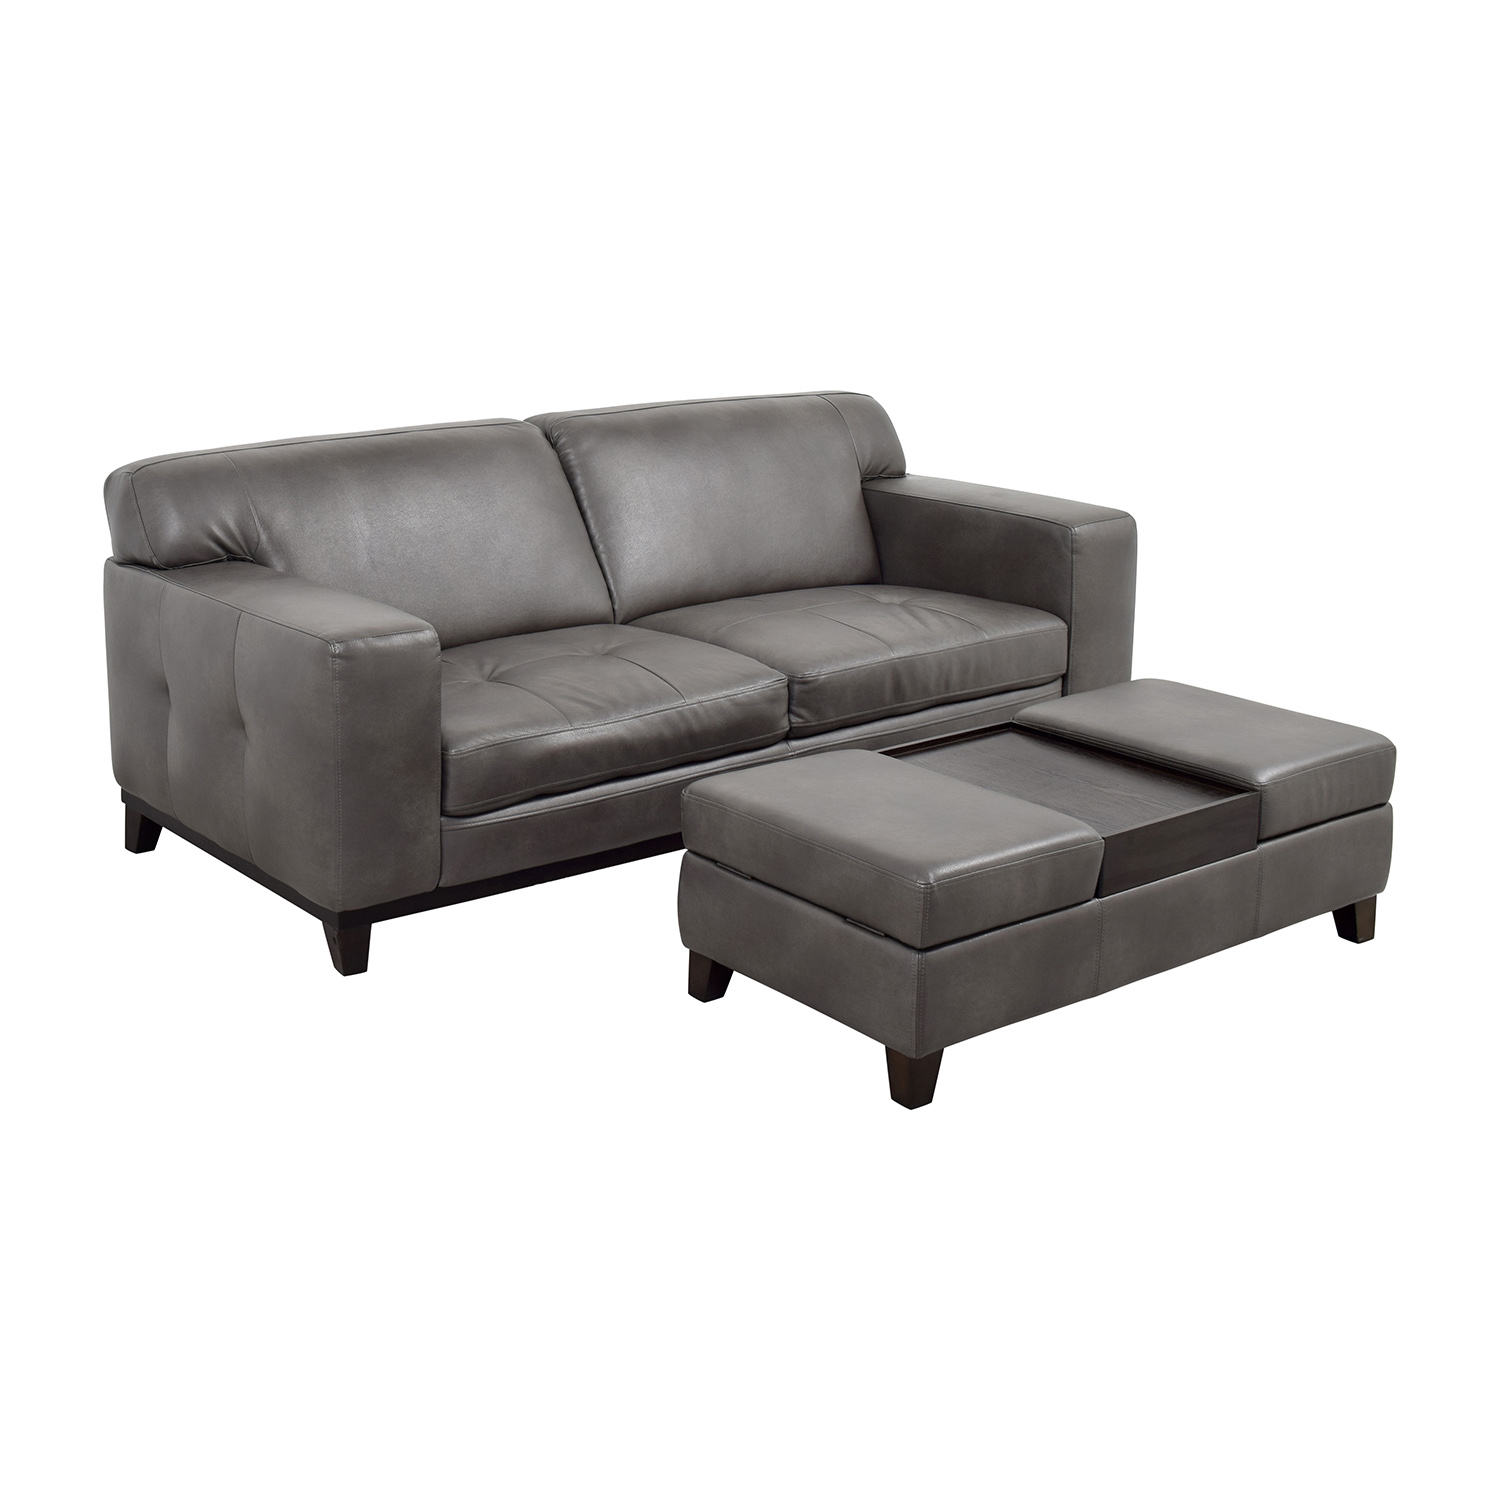 Raymour & Flanigan Grey Leather Couch with Storage Ottoman / Sofas